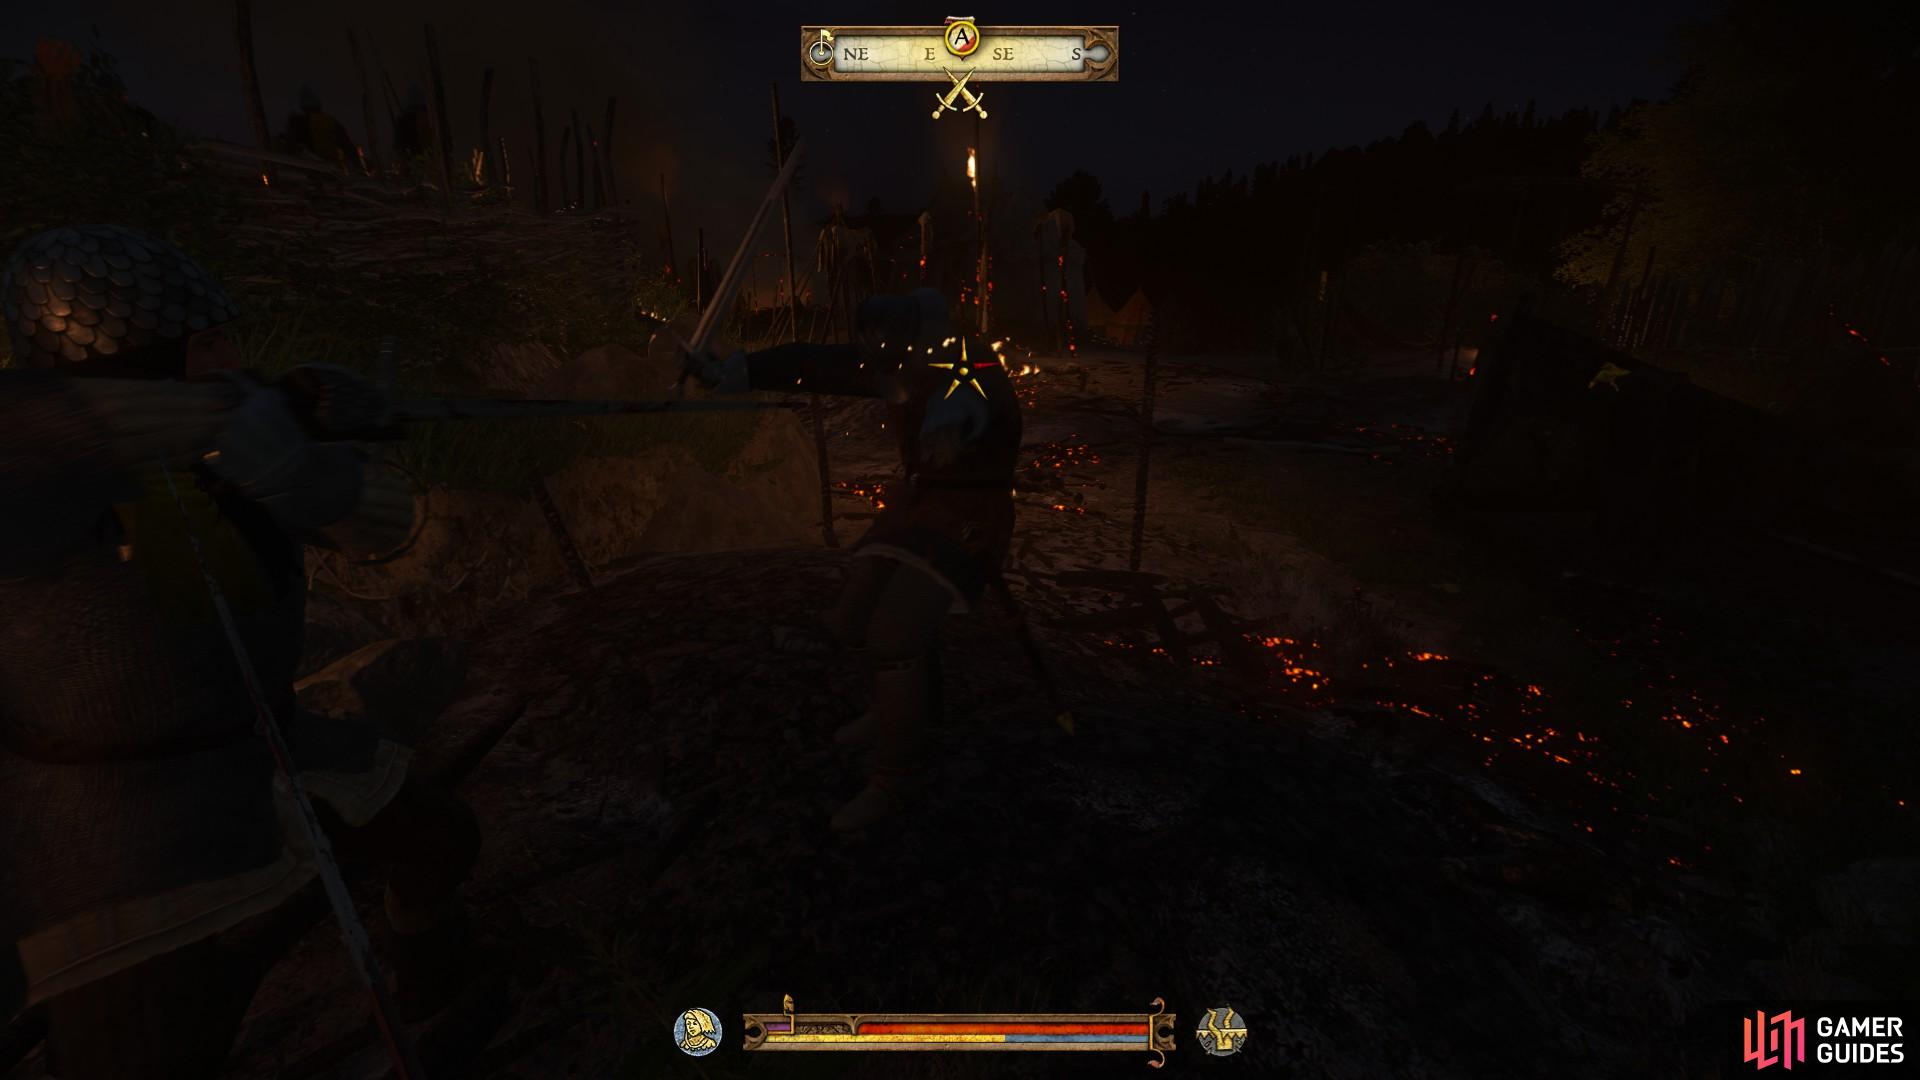 Fight the bandits that are waiting to ambush from the burning tents to the east until you have secured the location.